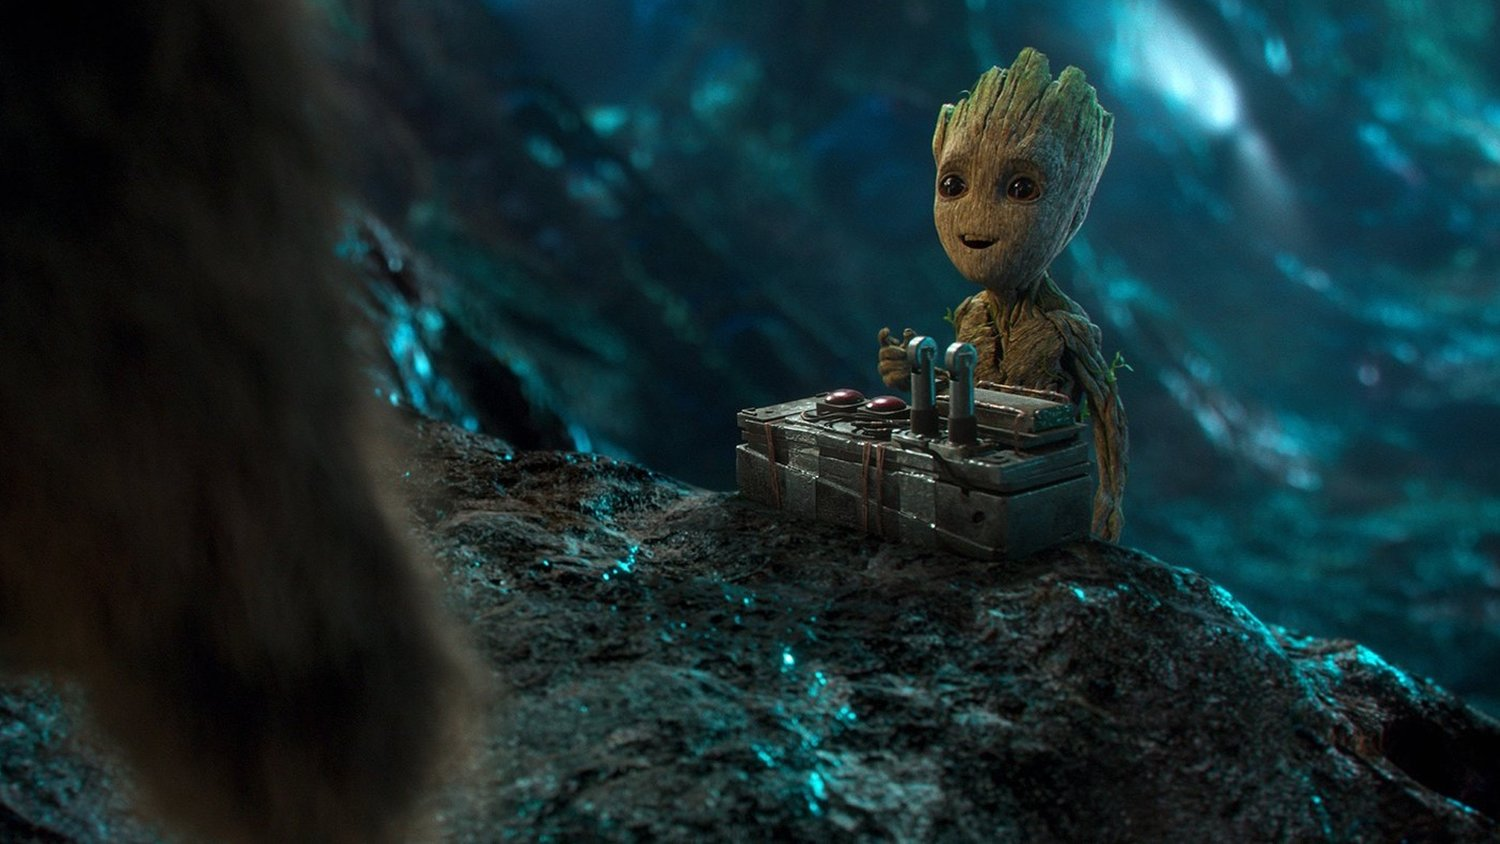 GUARDIANS OF THE GALAXY VOL. 2 Two Fun New Clips and Two New TV Spots